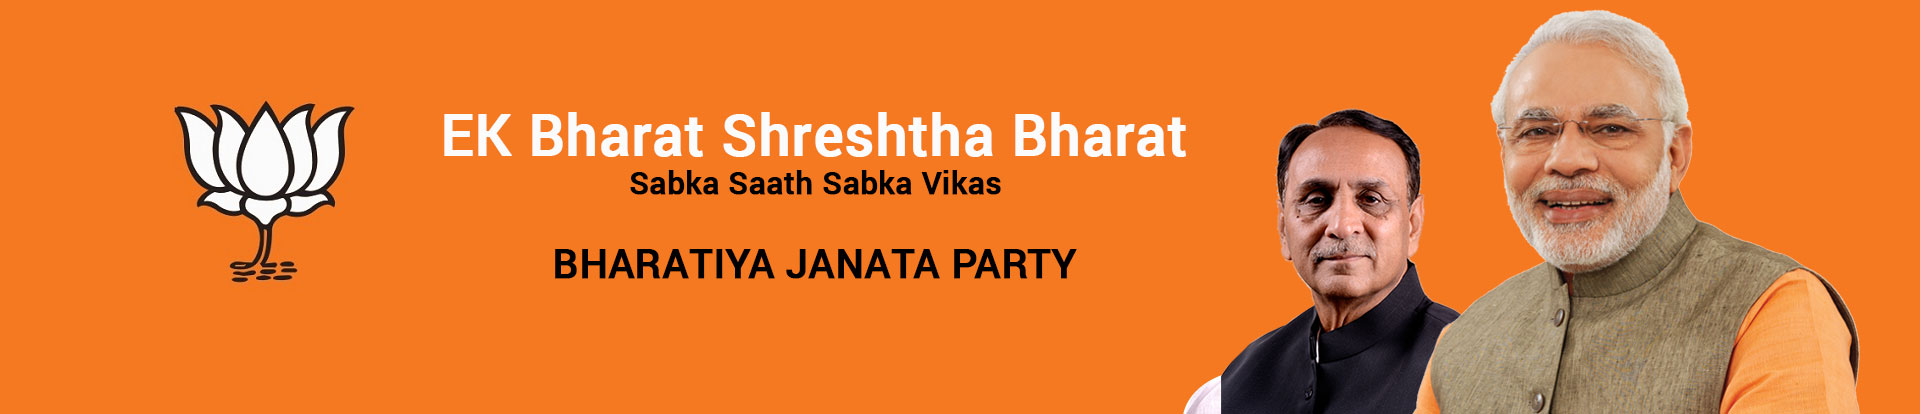 banner image of bjp connect